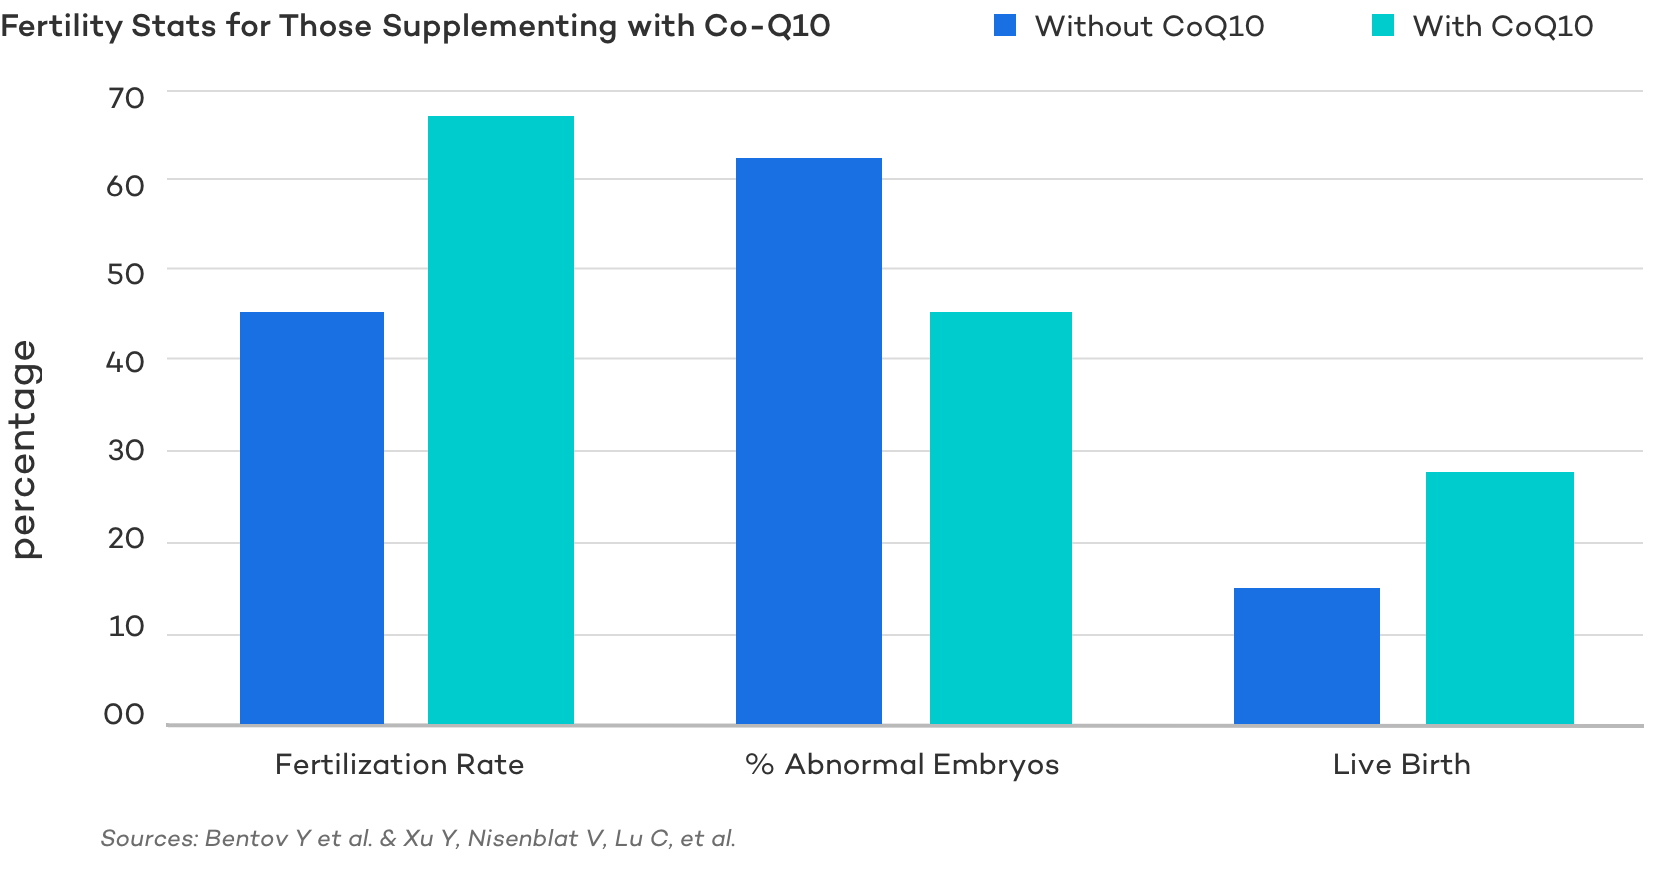 Fertility Stats for Those Supplementing with Co-Q10